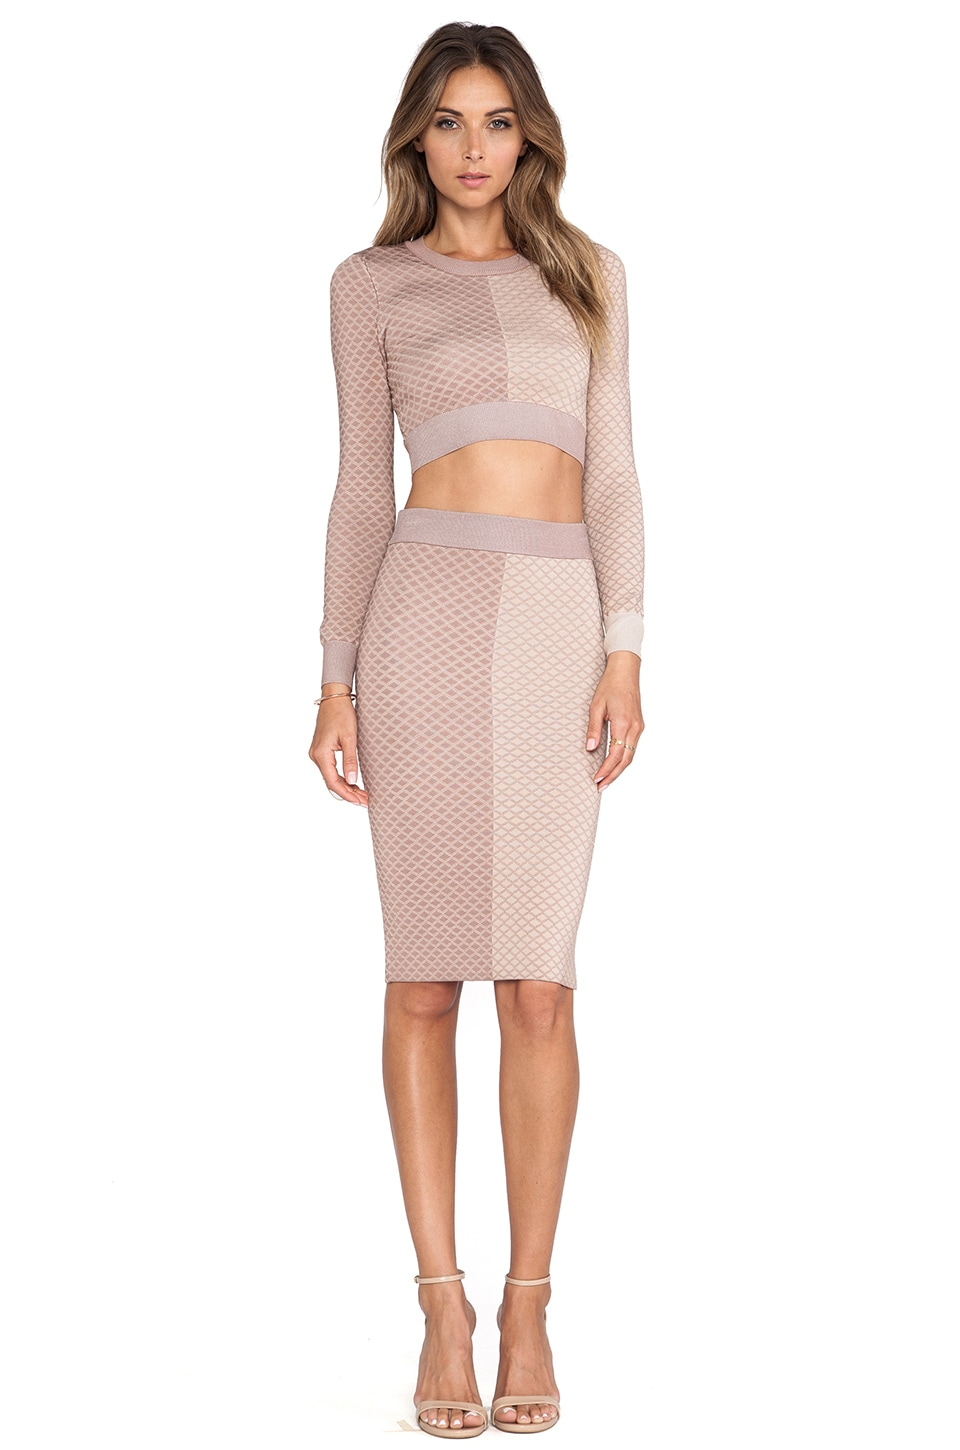 Nude Pink Pencil Skirt | Jill Dress